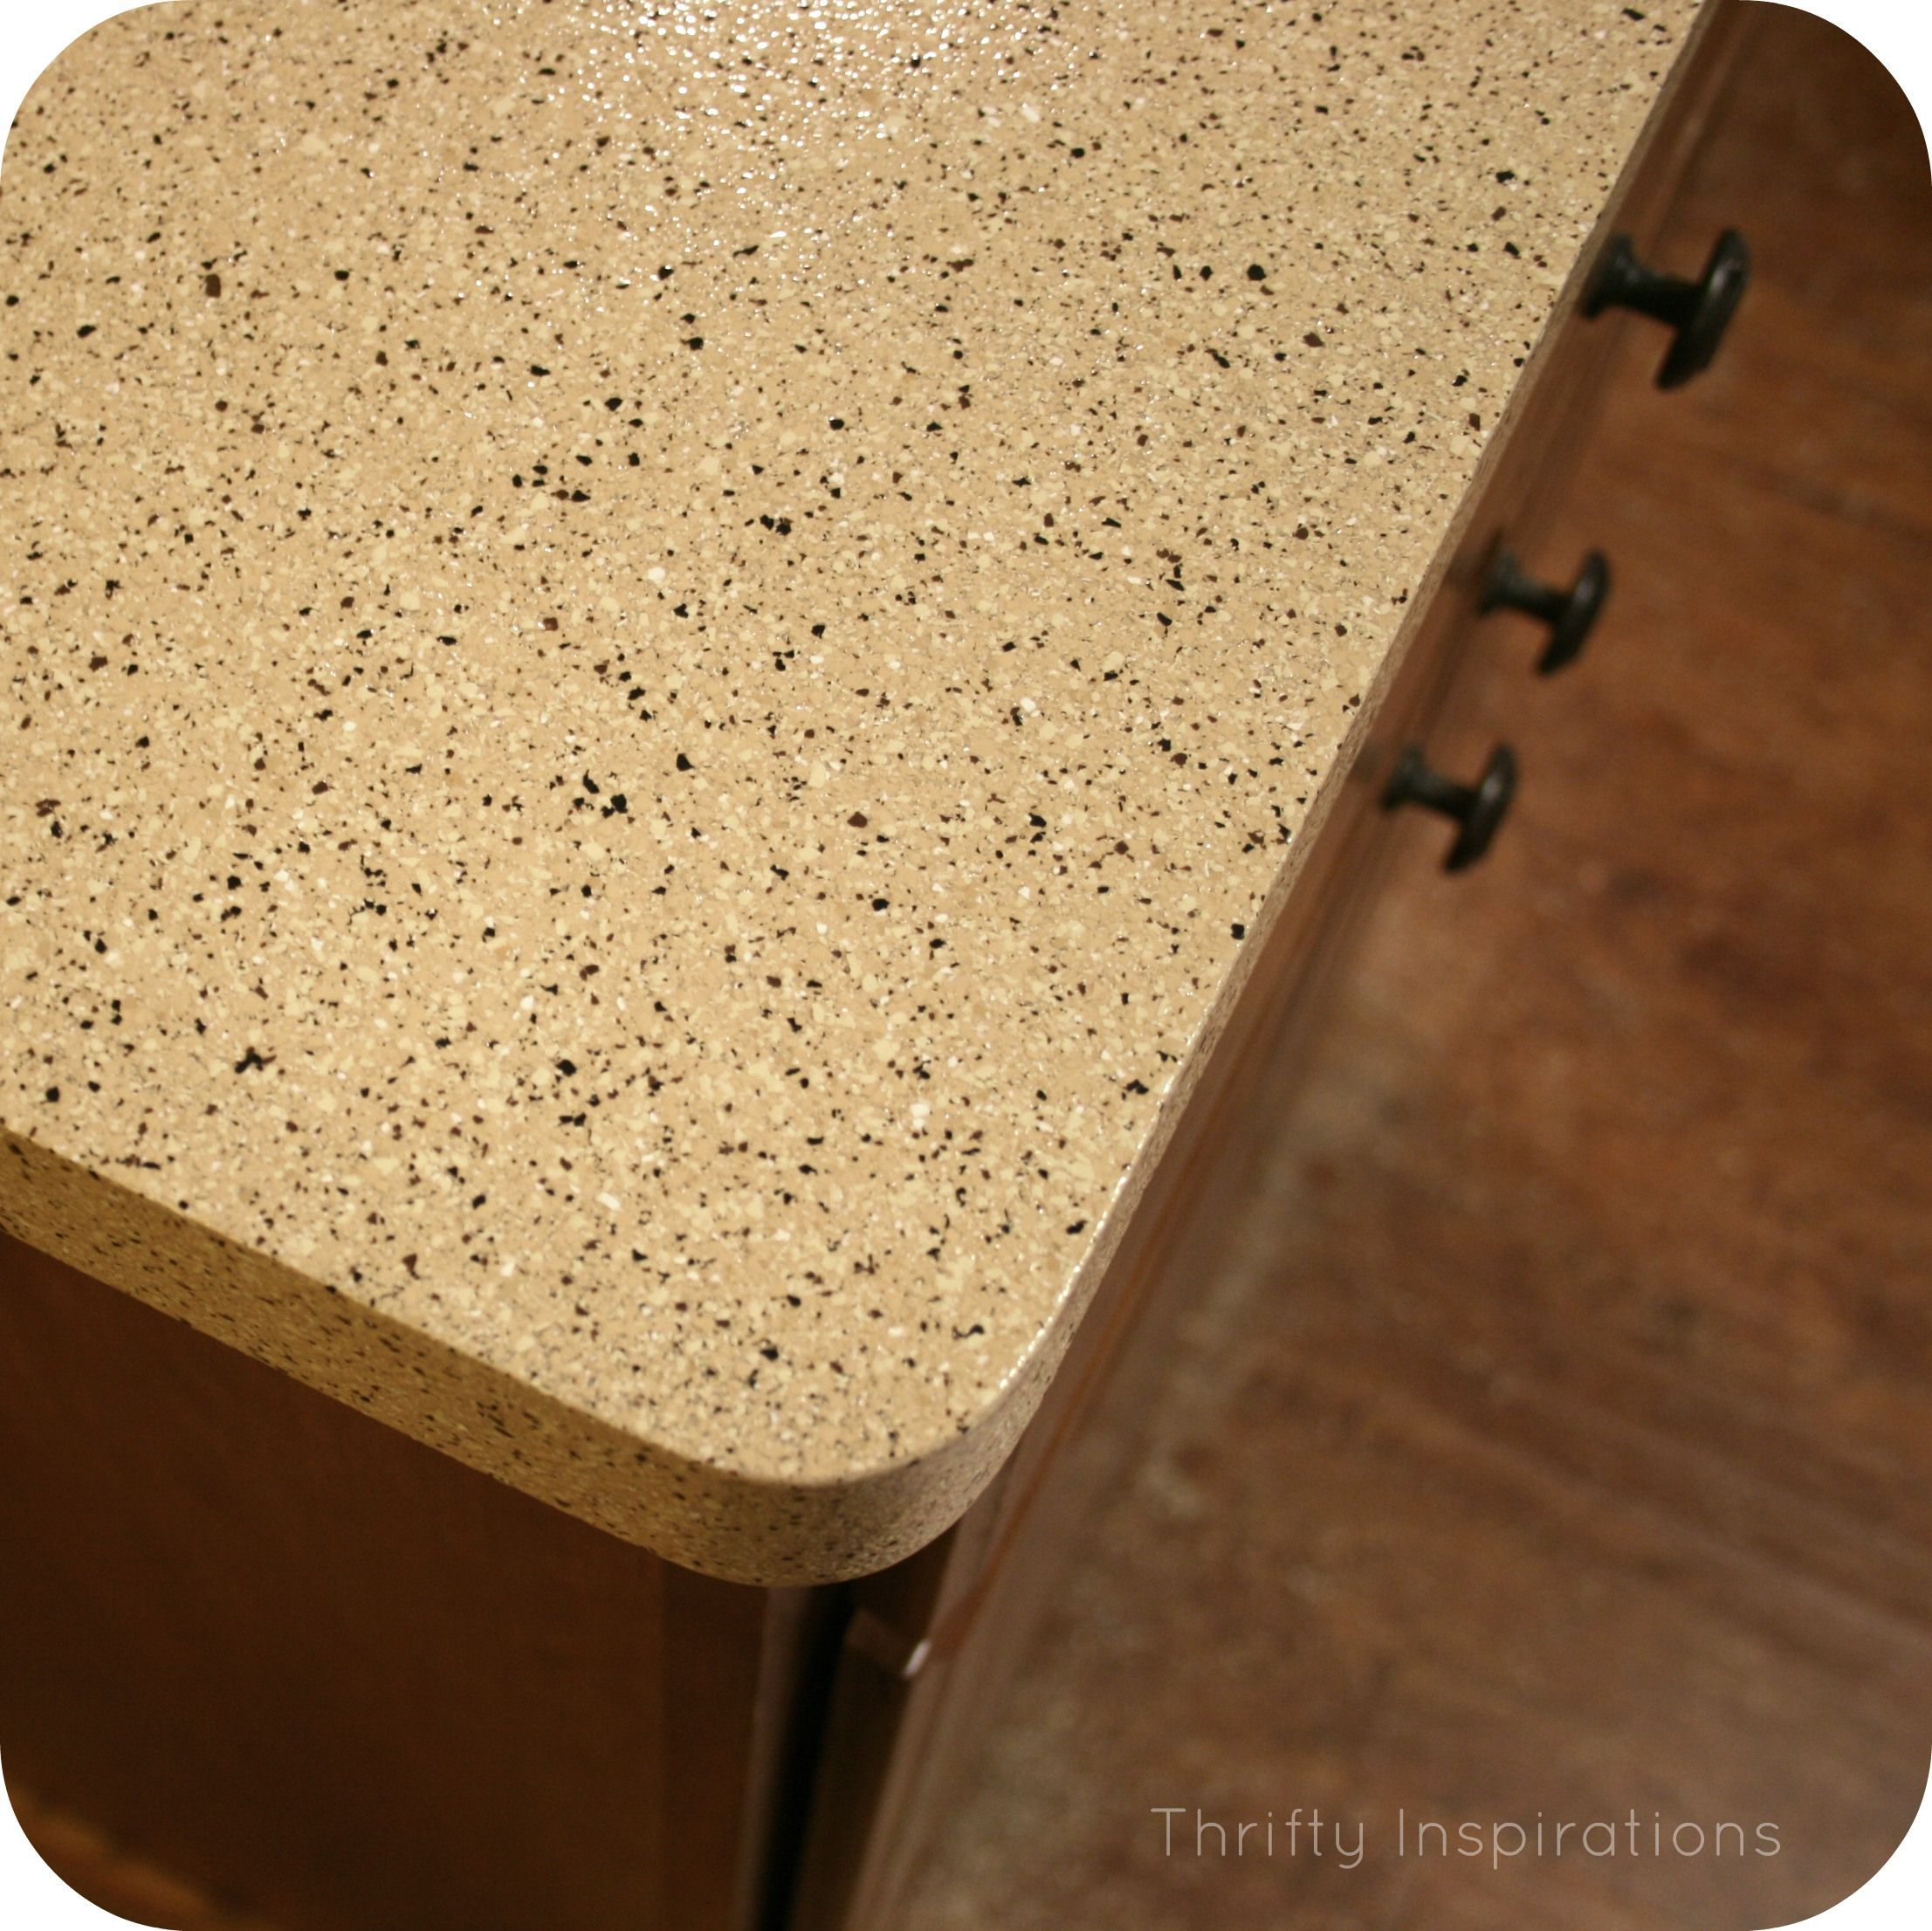 Rustoleum Countertop Transformations Desert Sand Is A Bright